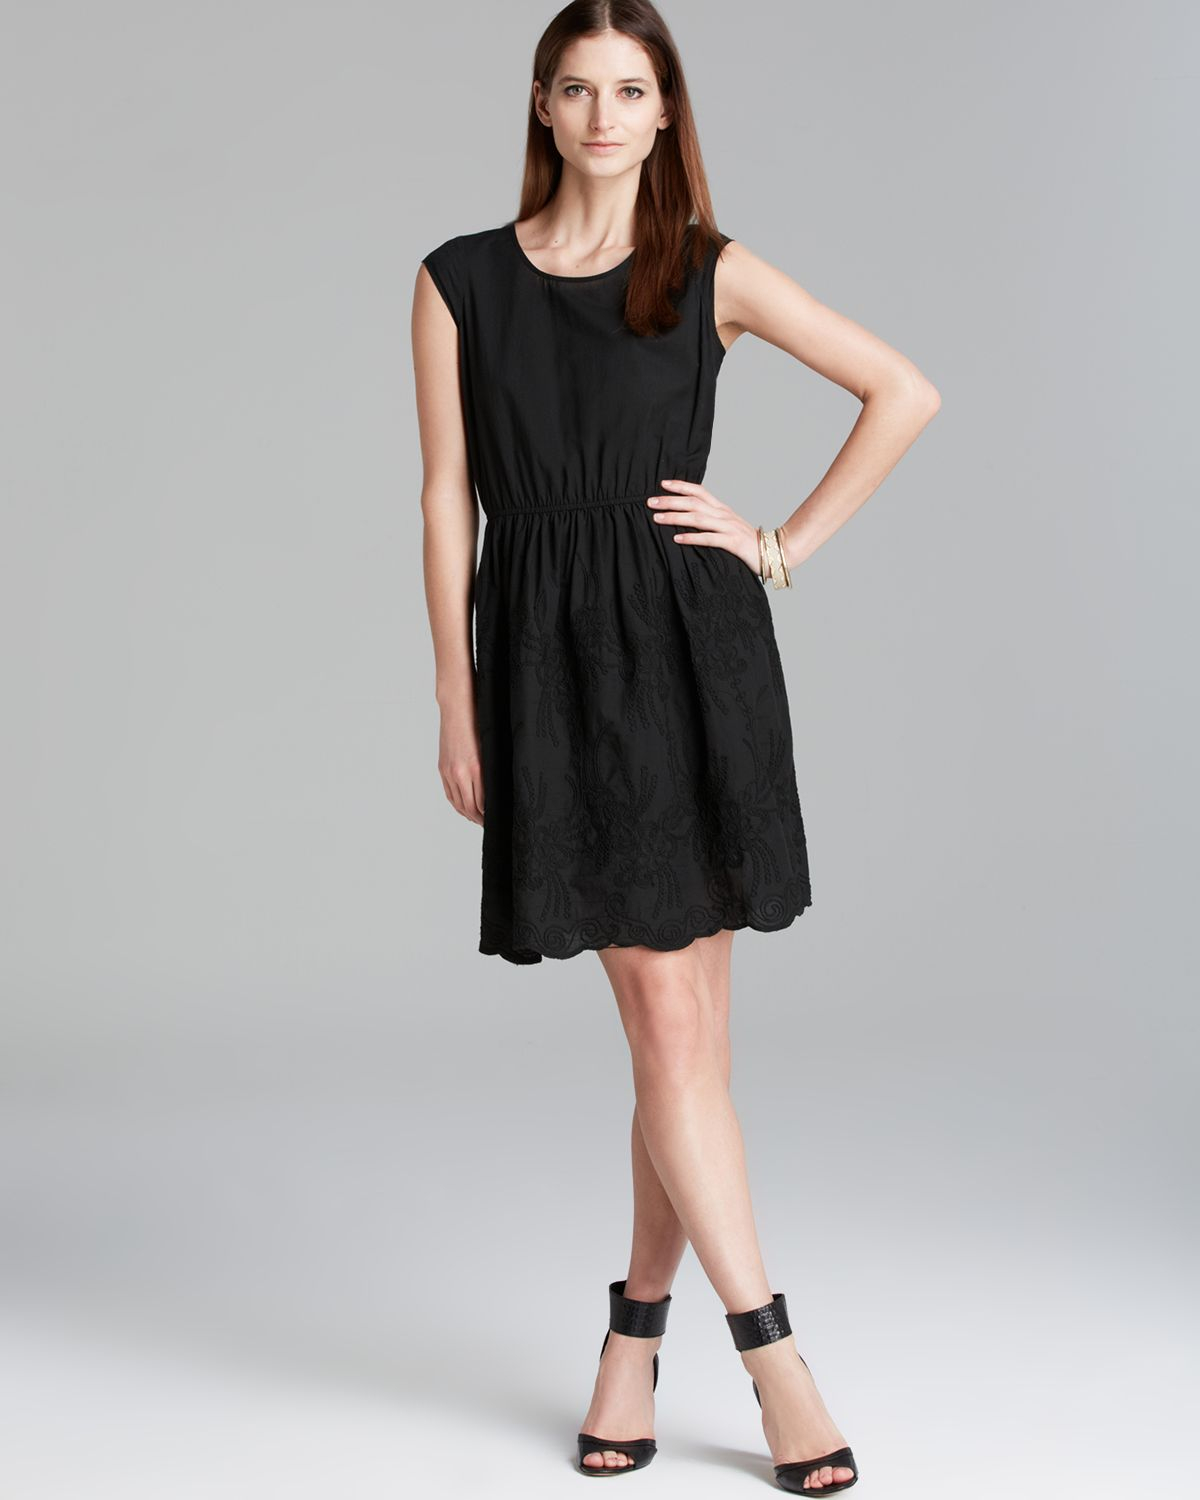 2dfa2a4bdd Lyst - Two By Vince Camuto Cap Sleeve Embroidered Dress in Black